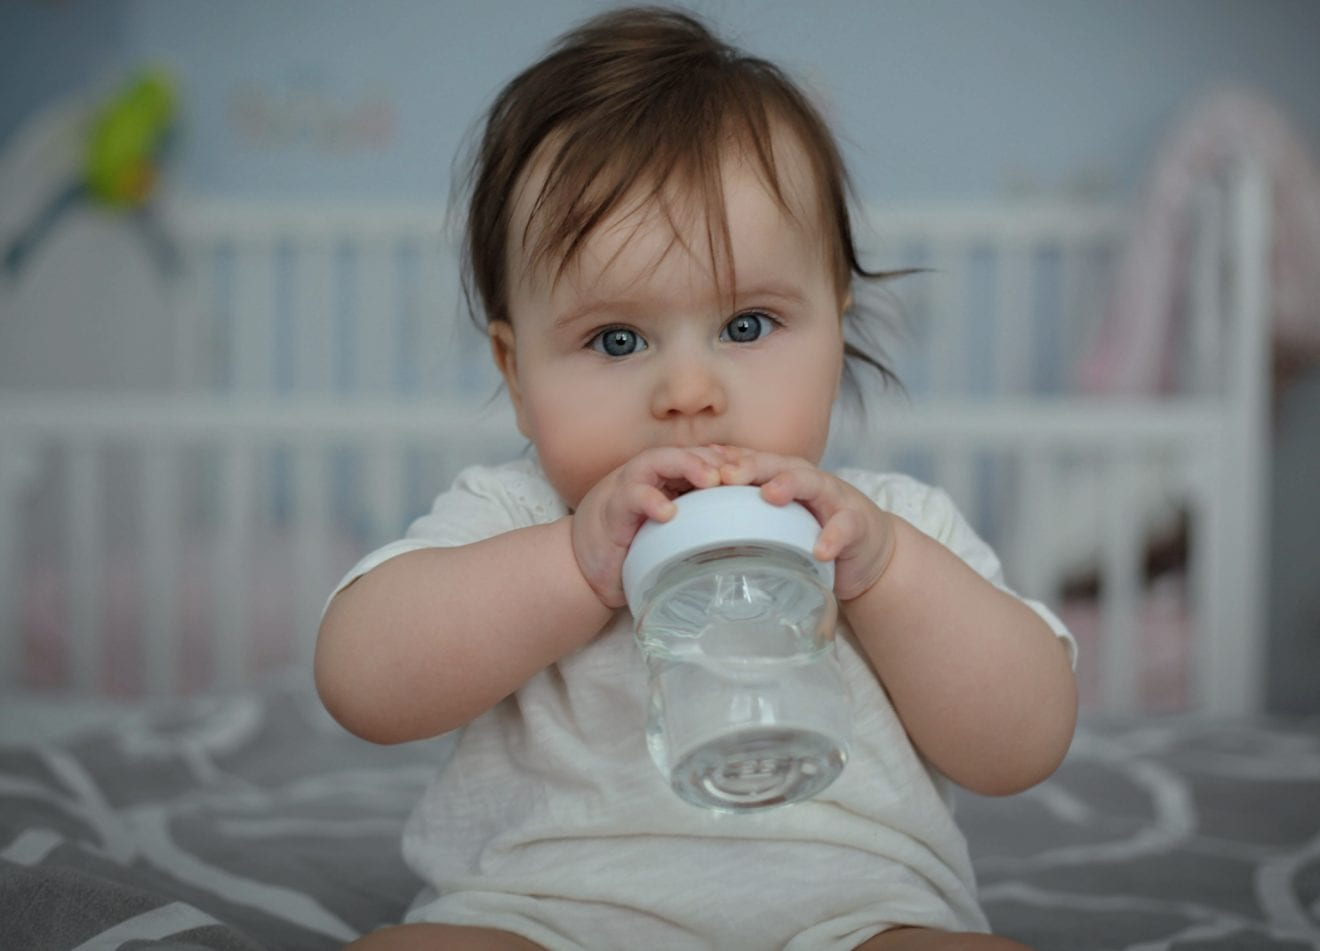 When Can You Give Your Baby Water? when can you start giving babies water, when can you start giving a baby water